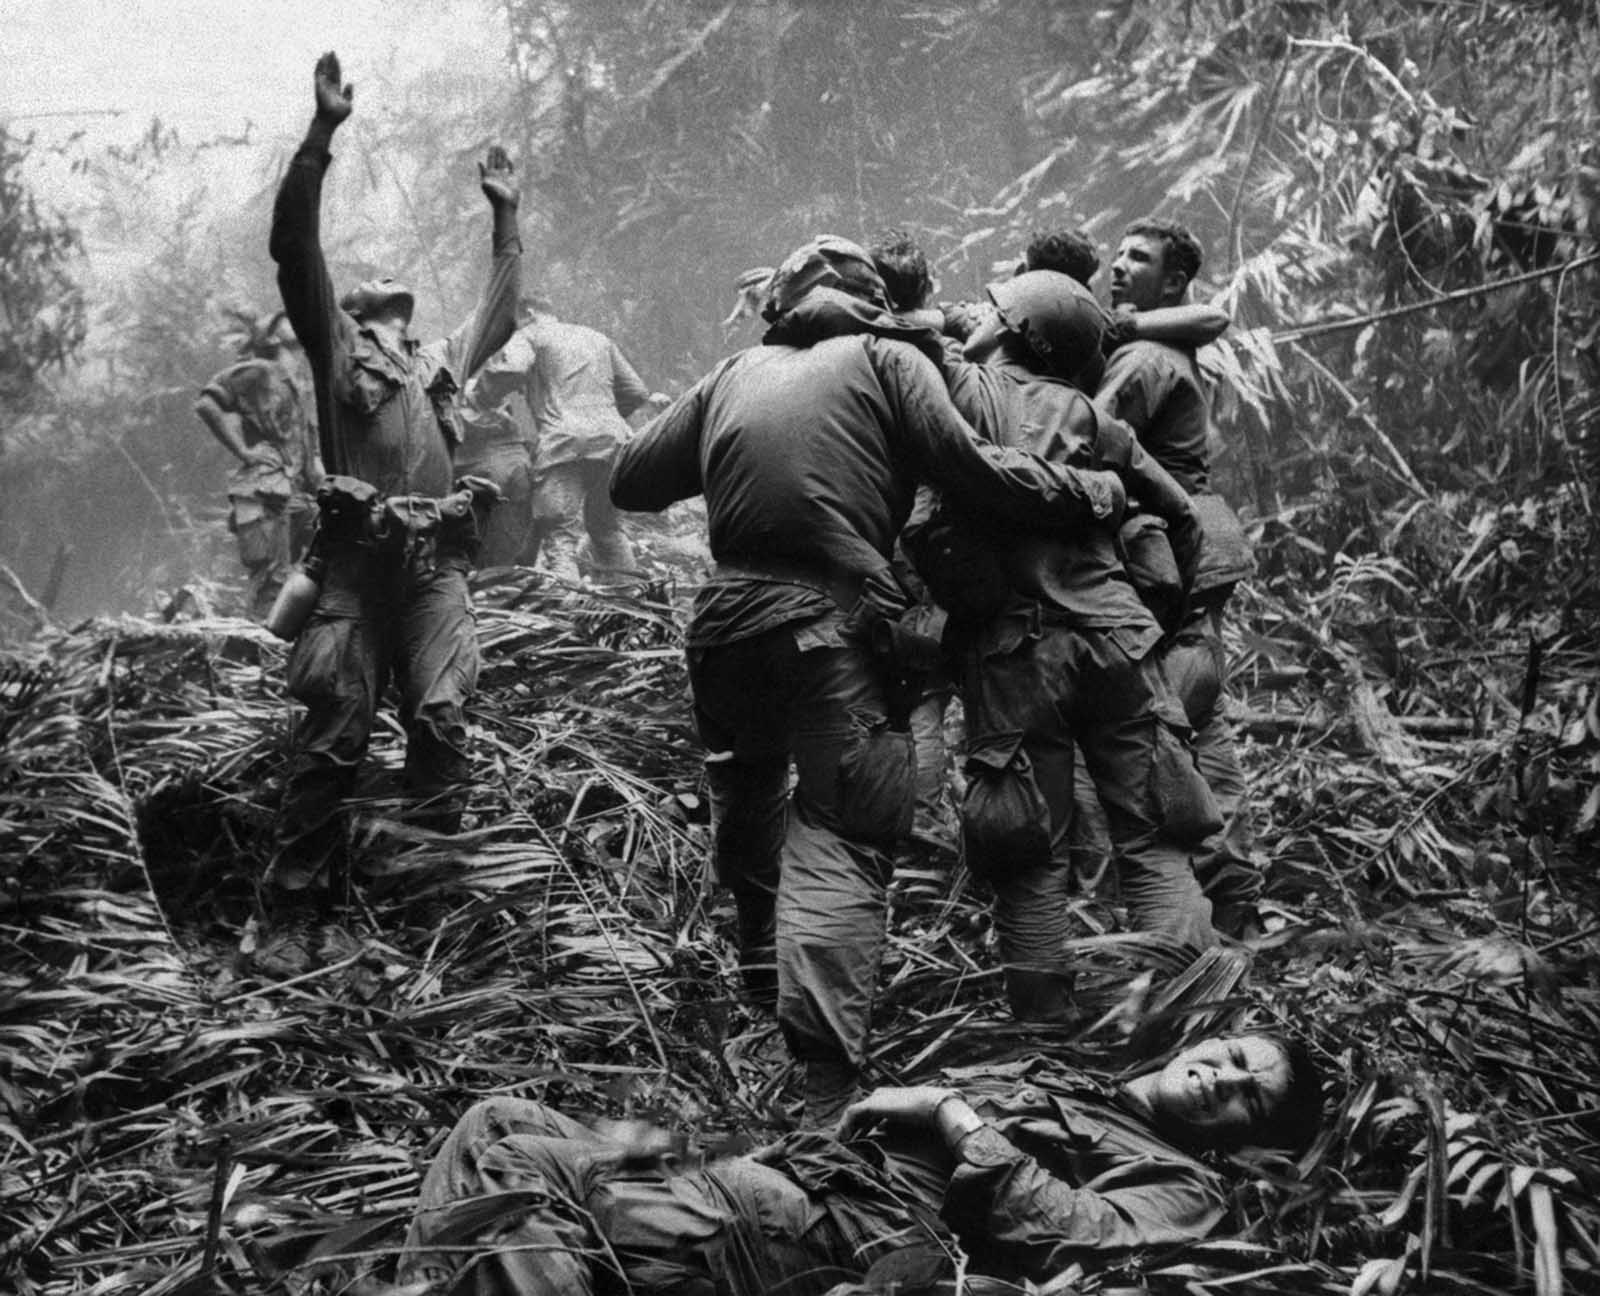 As fellow troopers aid wounded comrades the first sergeant of a company 101st airborne division guides a medevac helicopter through the jungle foliage to